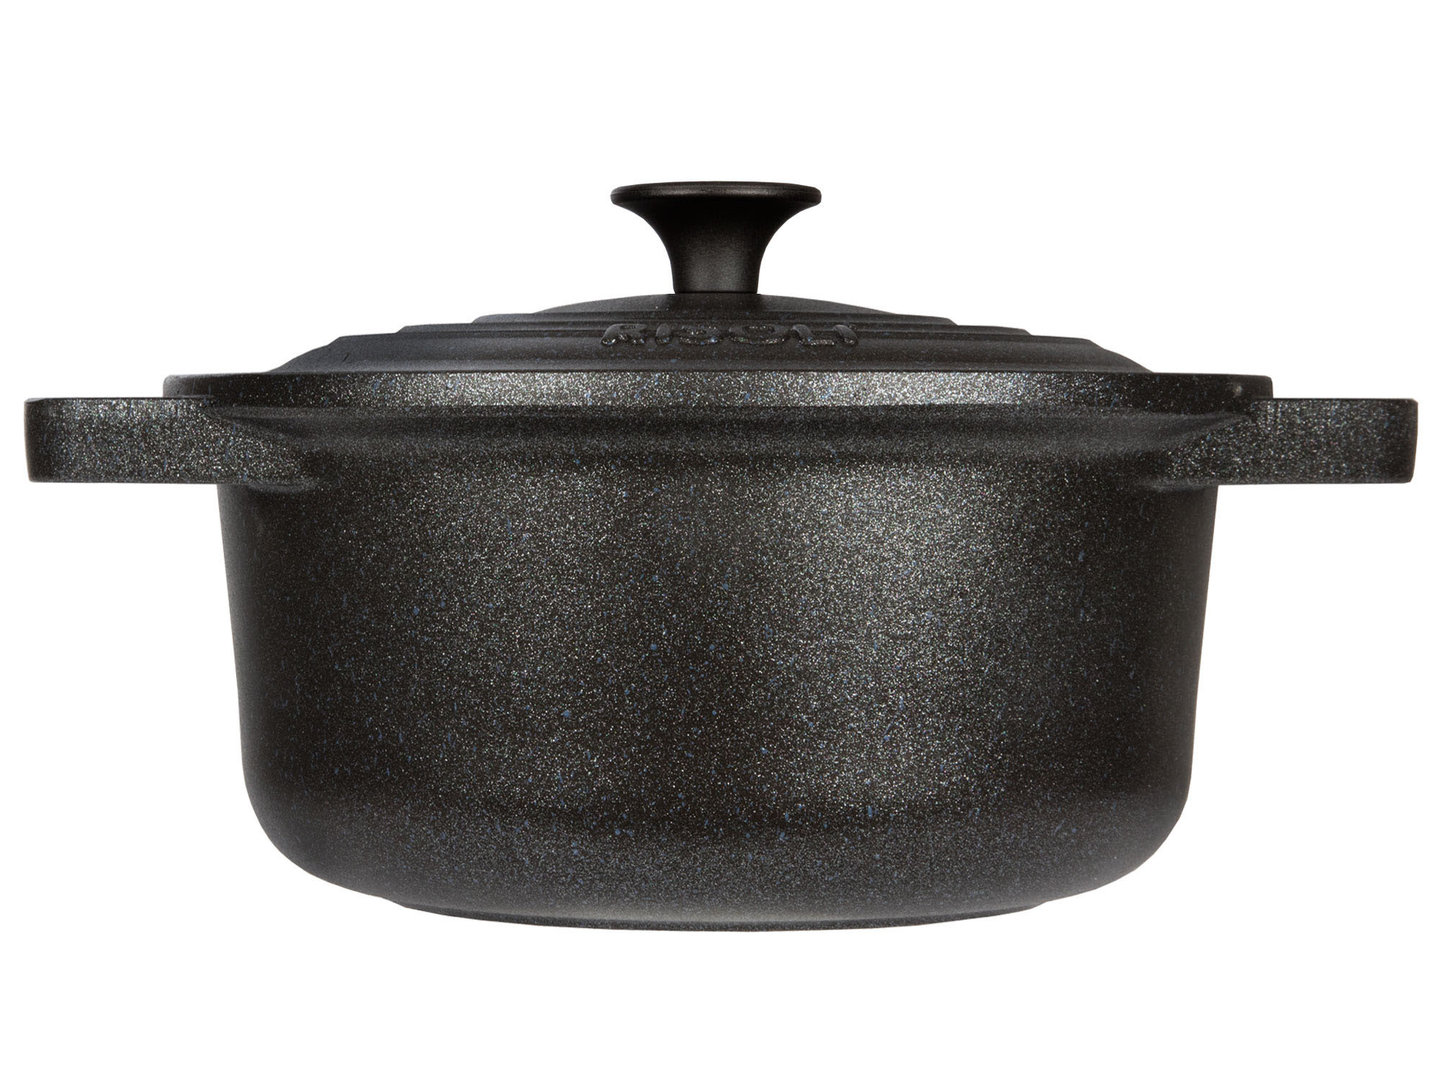 RISOLI cast aluminum casserole LE PIGNATTE 28 cm cocotte round induction with glass lid